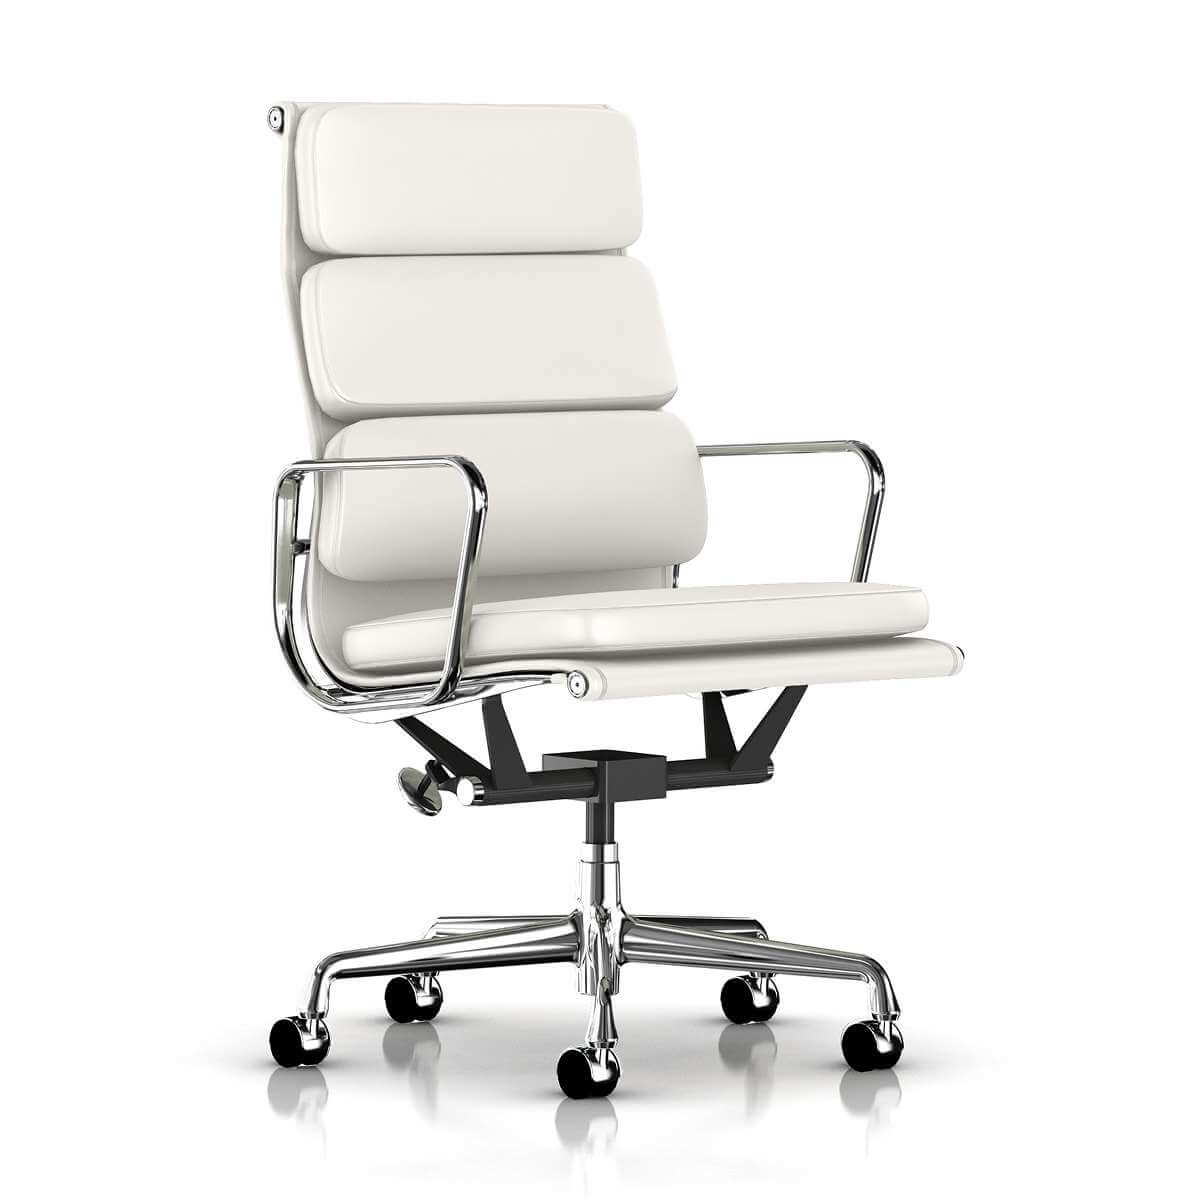 Ergonomic Office Chair - Eames 1